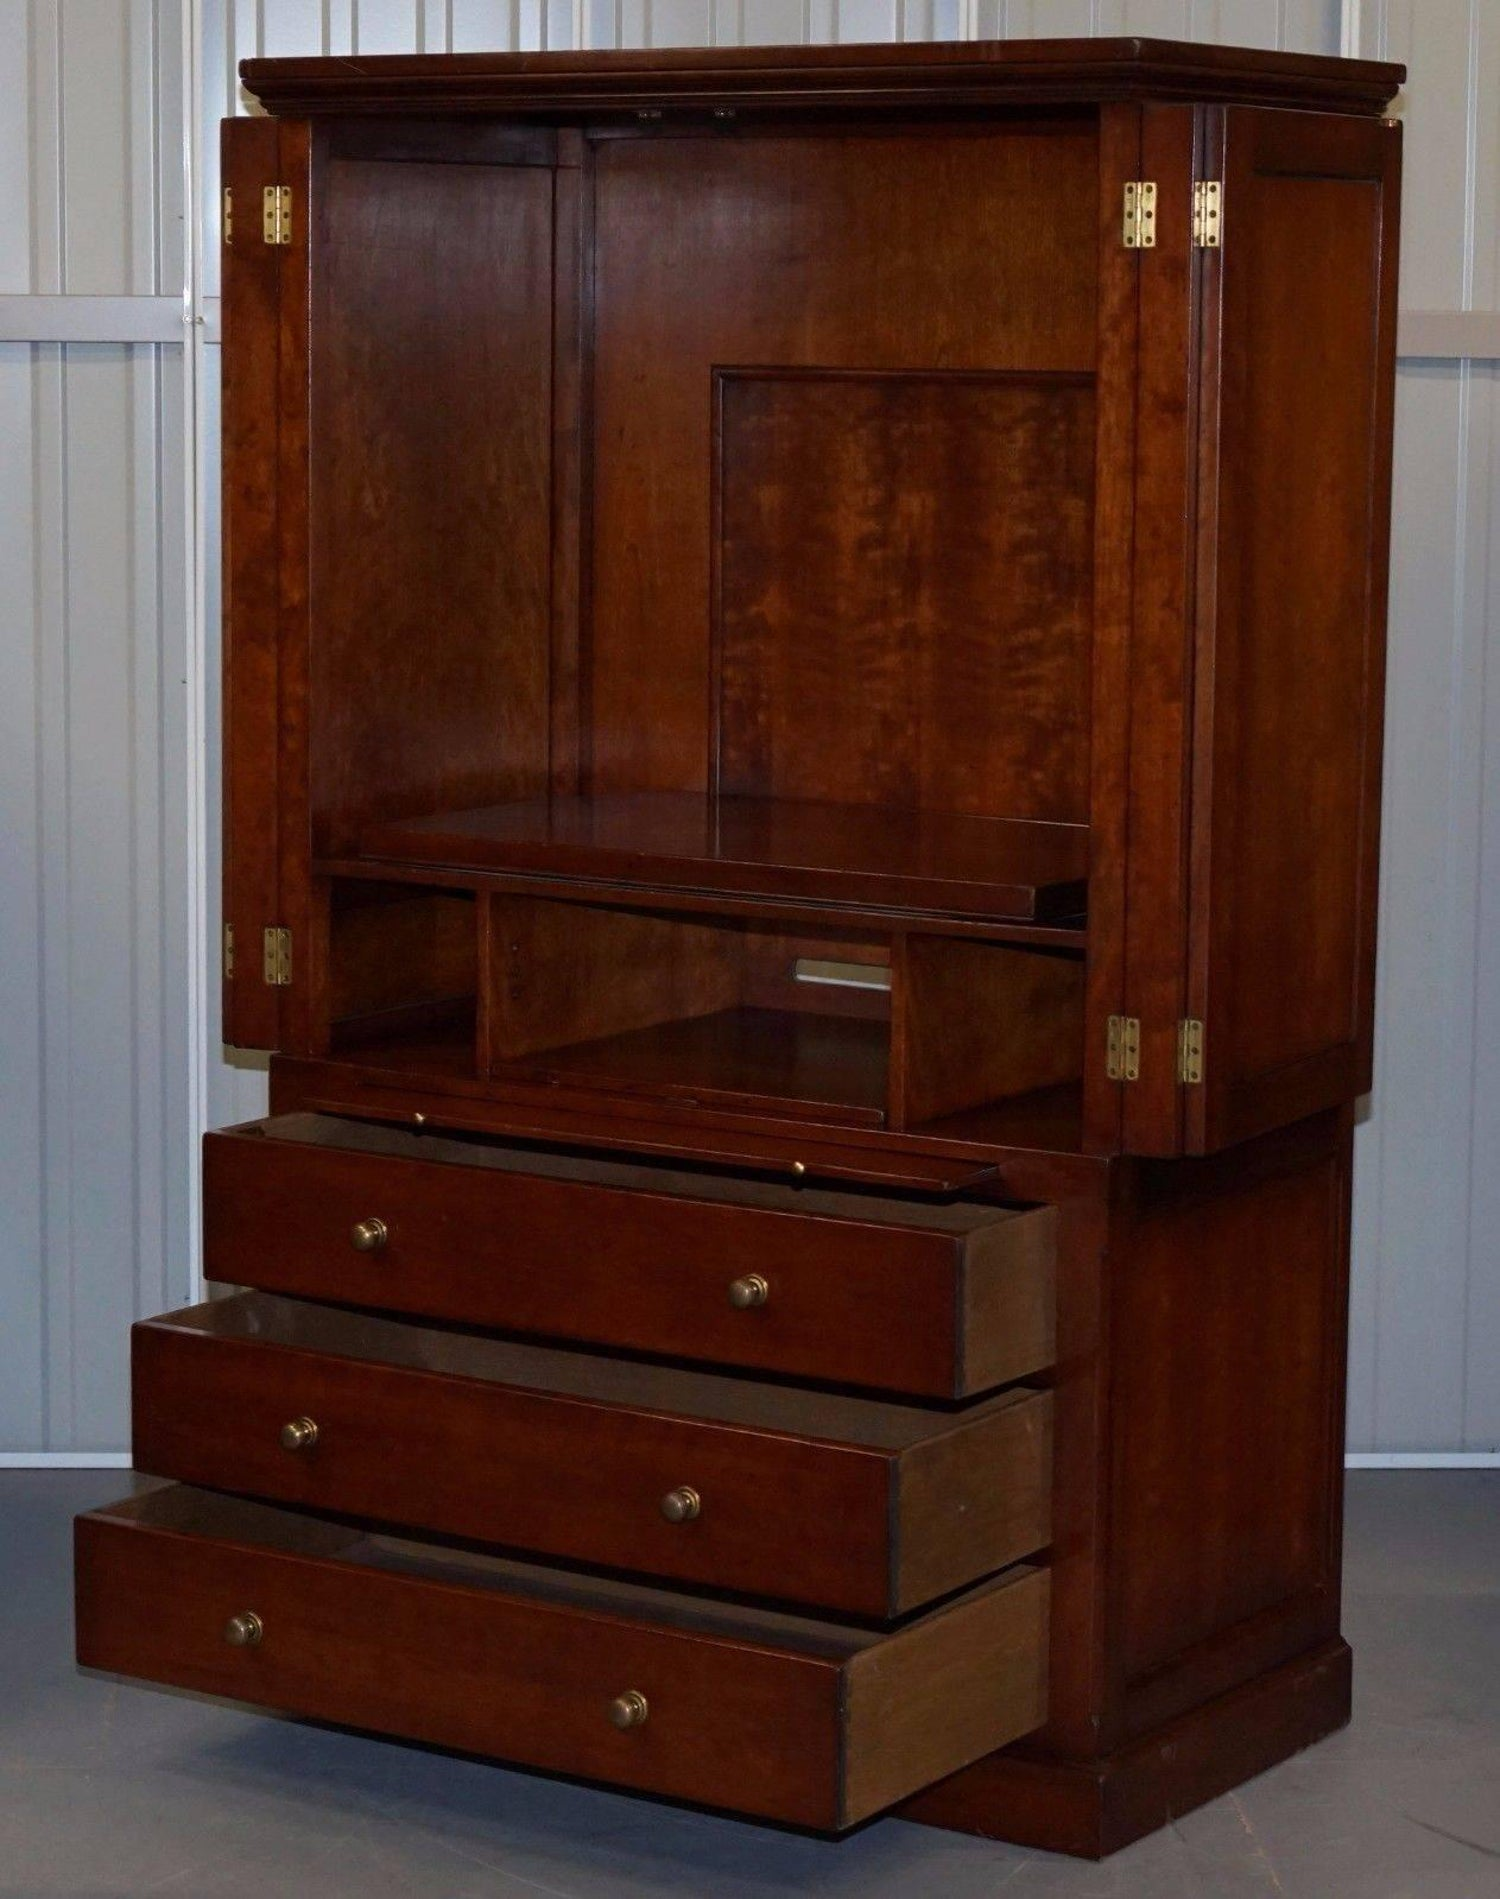 Harrods london kennedy mahogany campaign furniture media entertainment cabinet for sale at 1stdibs